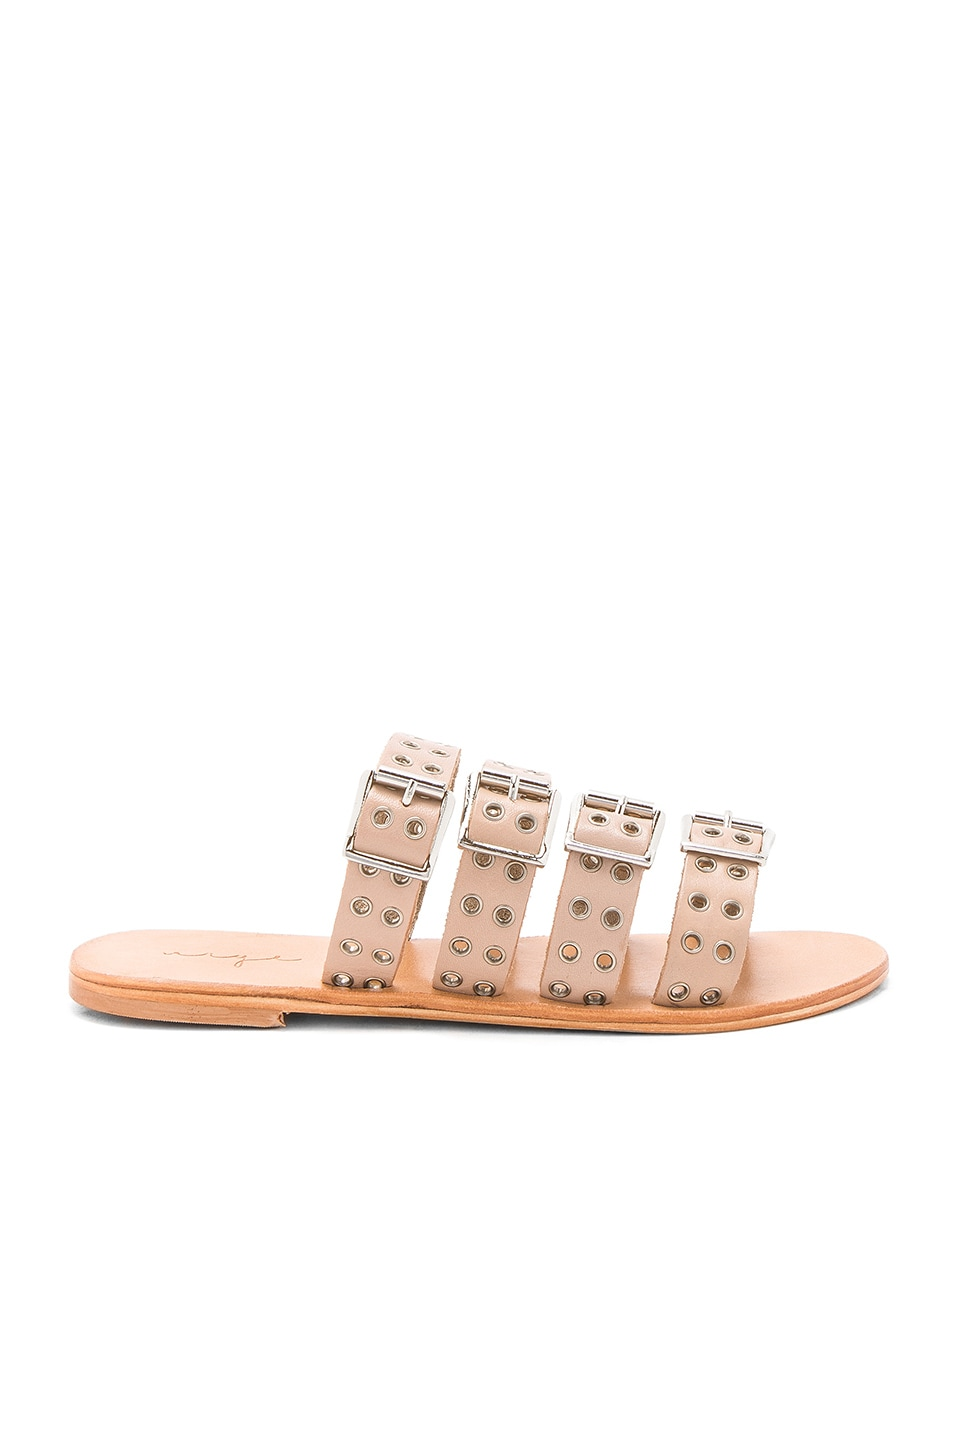 Remy Sandal by Urge